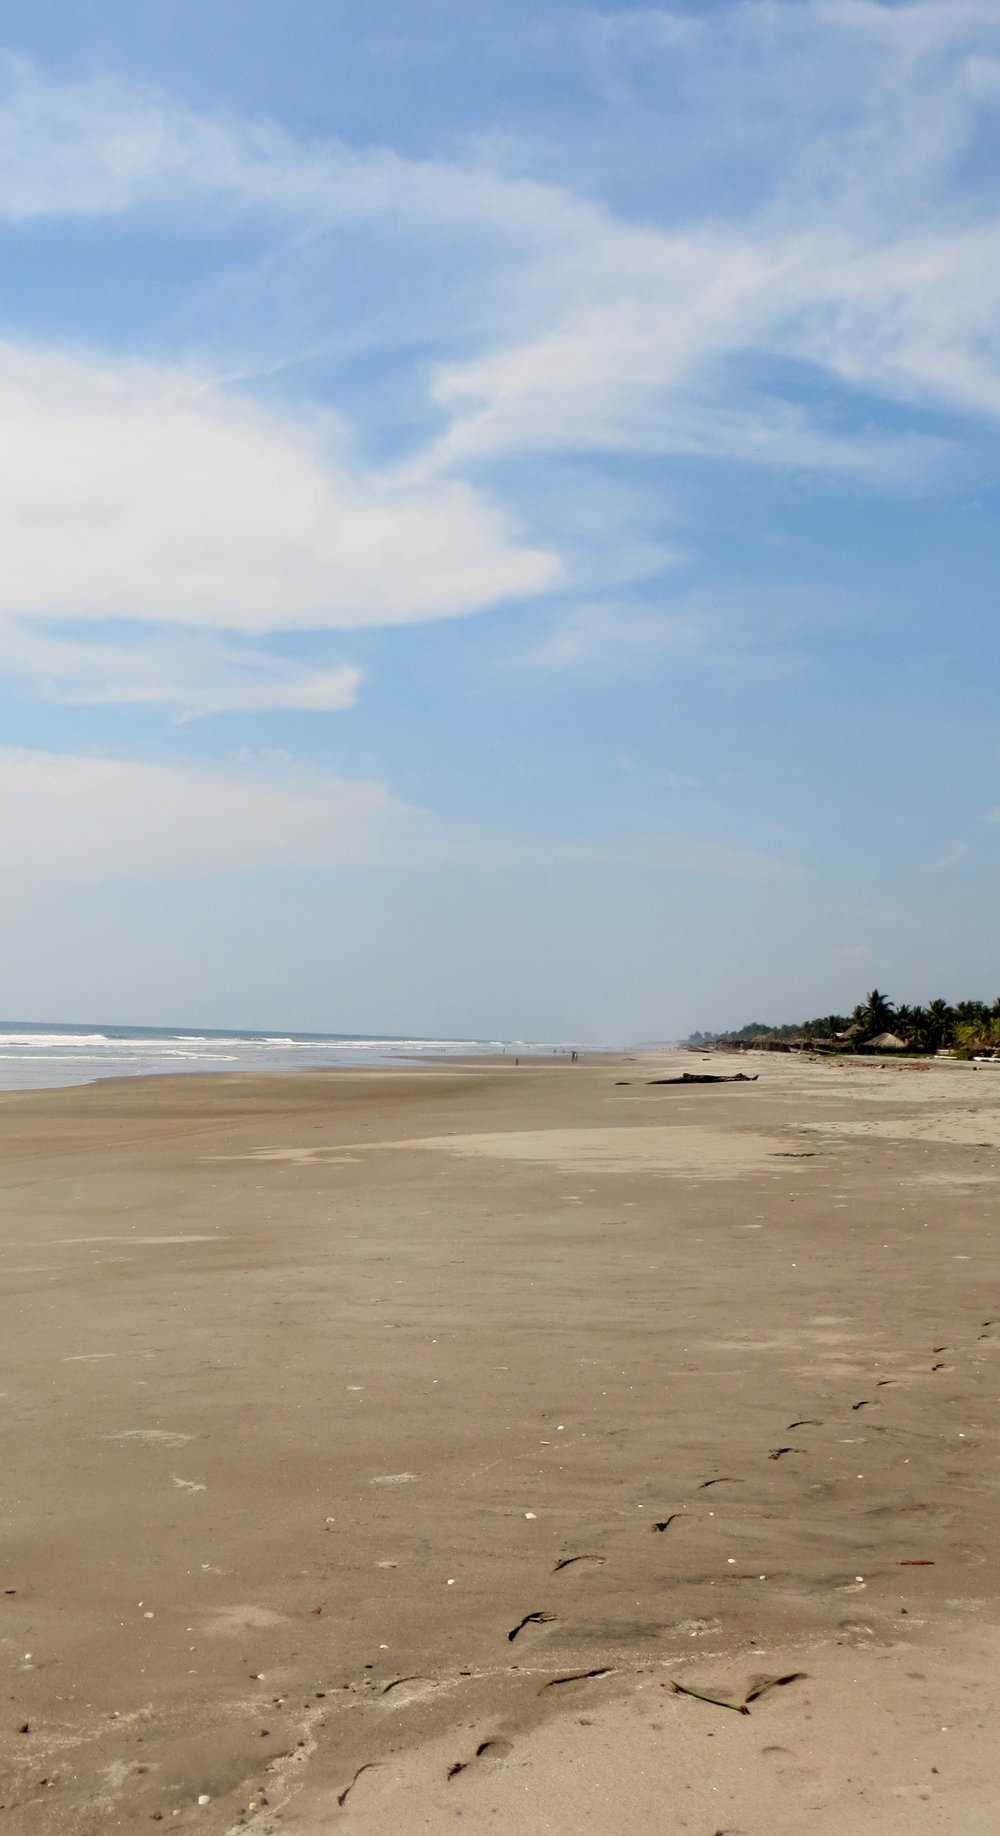 The volcanic sand of El Salvador's beaches